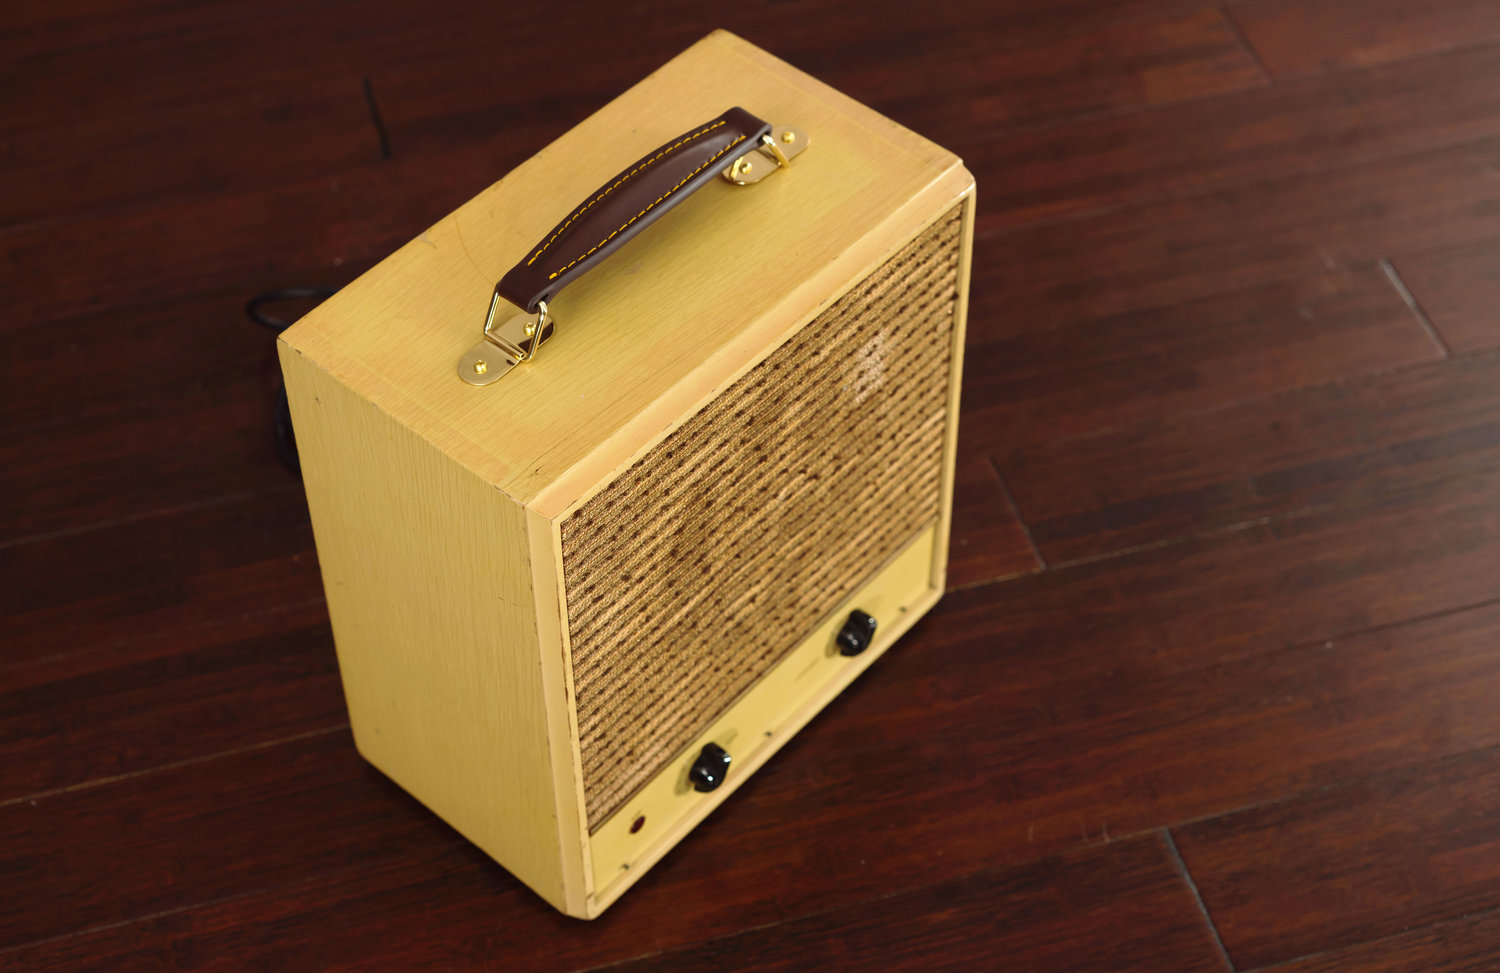 Sears Hi Fi Amp on Wood Floor